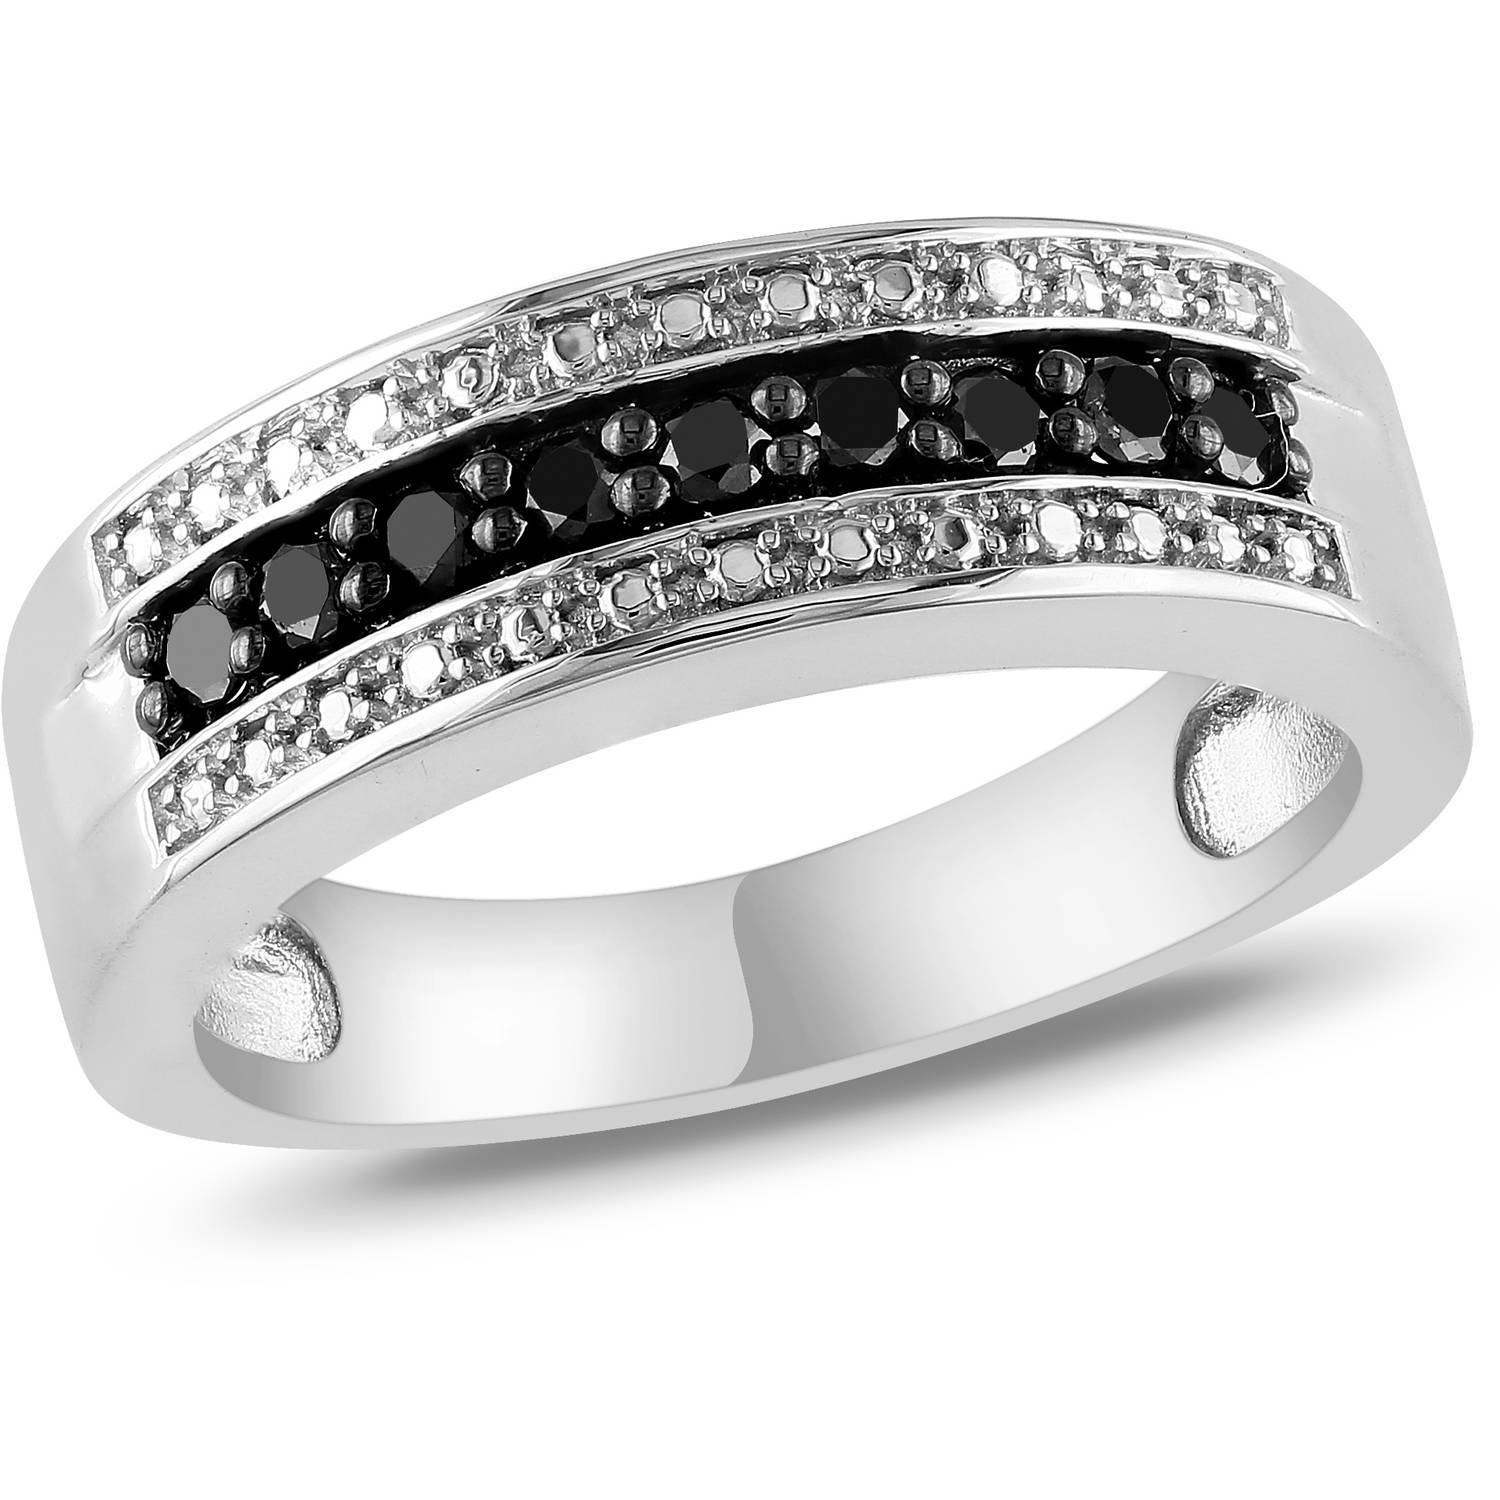 Rings – Walmart Intended For Walmart Jewelry Men's Wedding Bands (View 8 of 15)